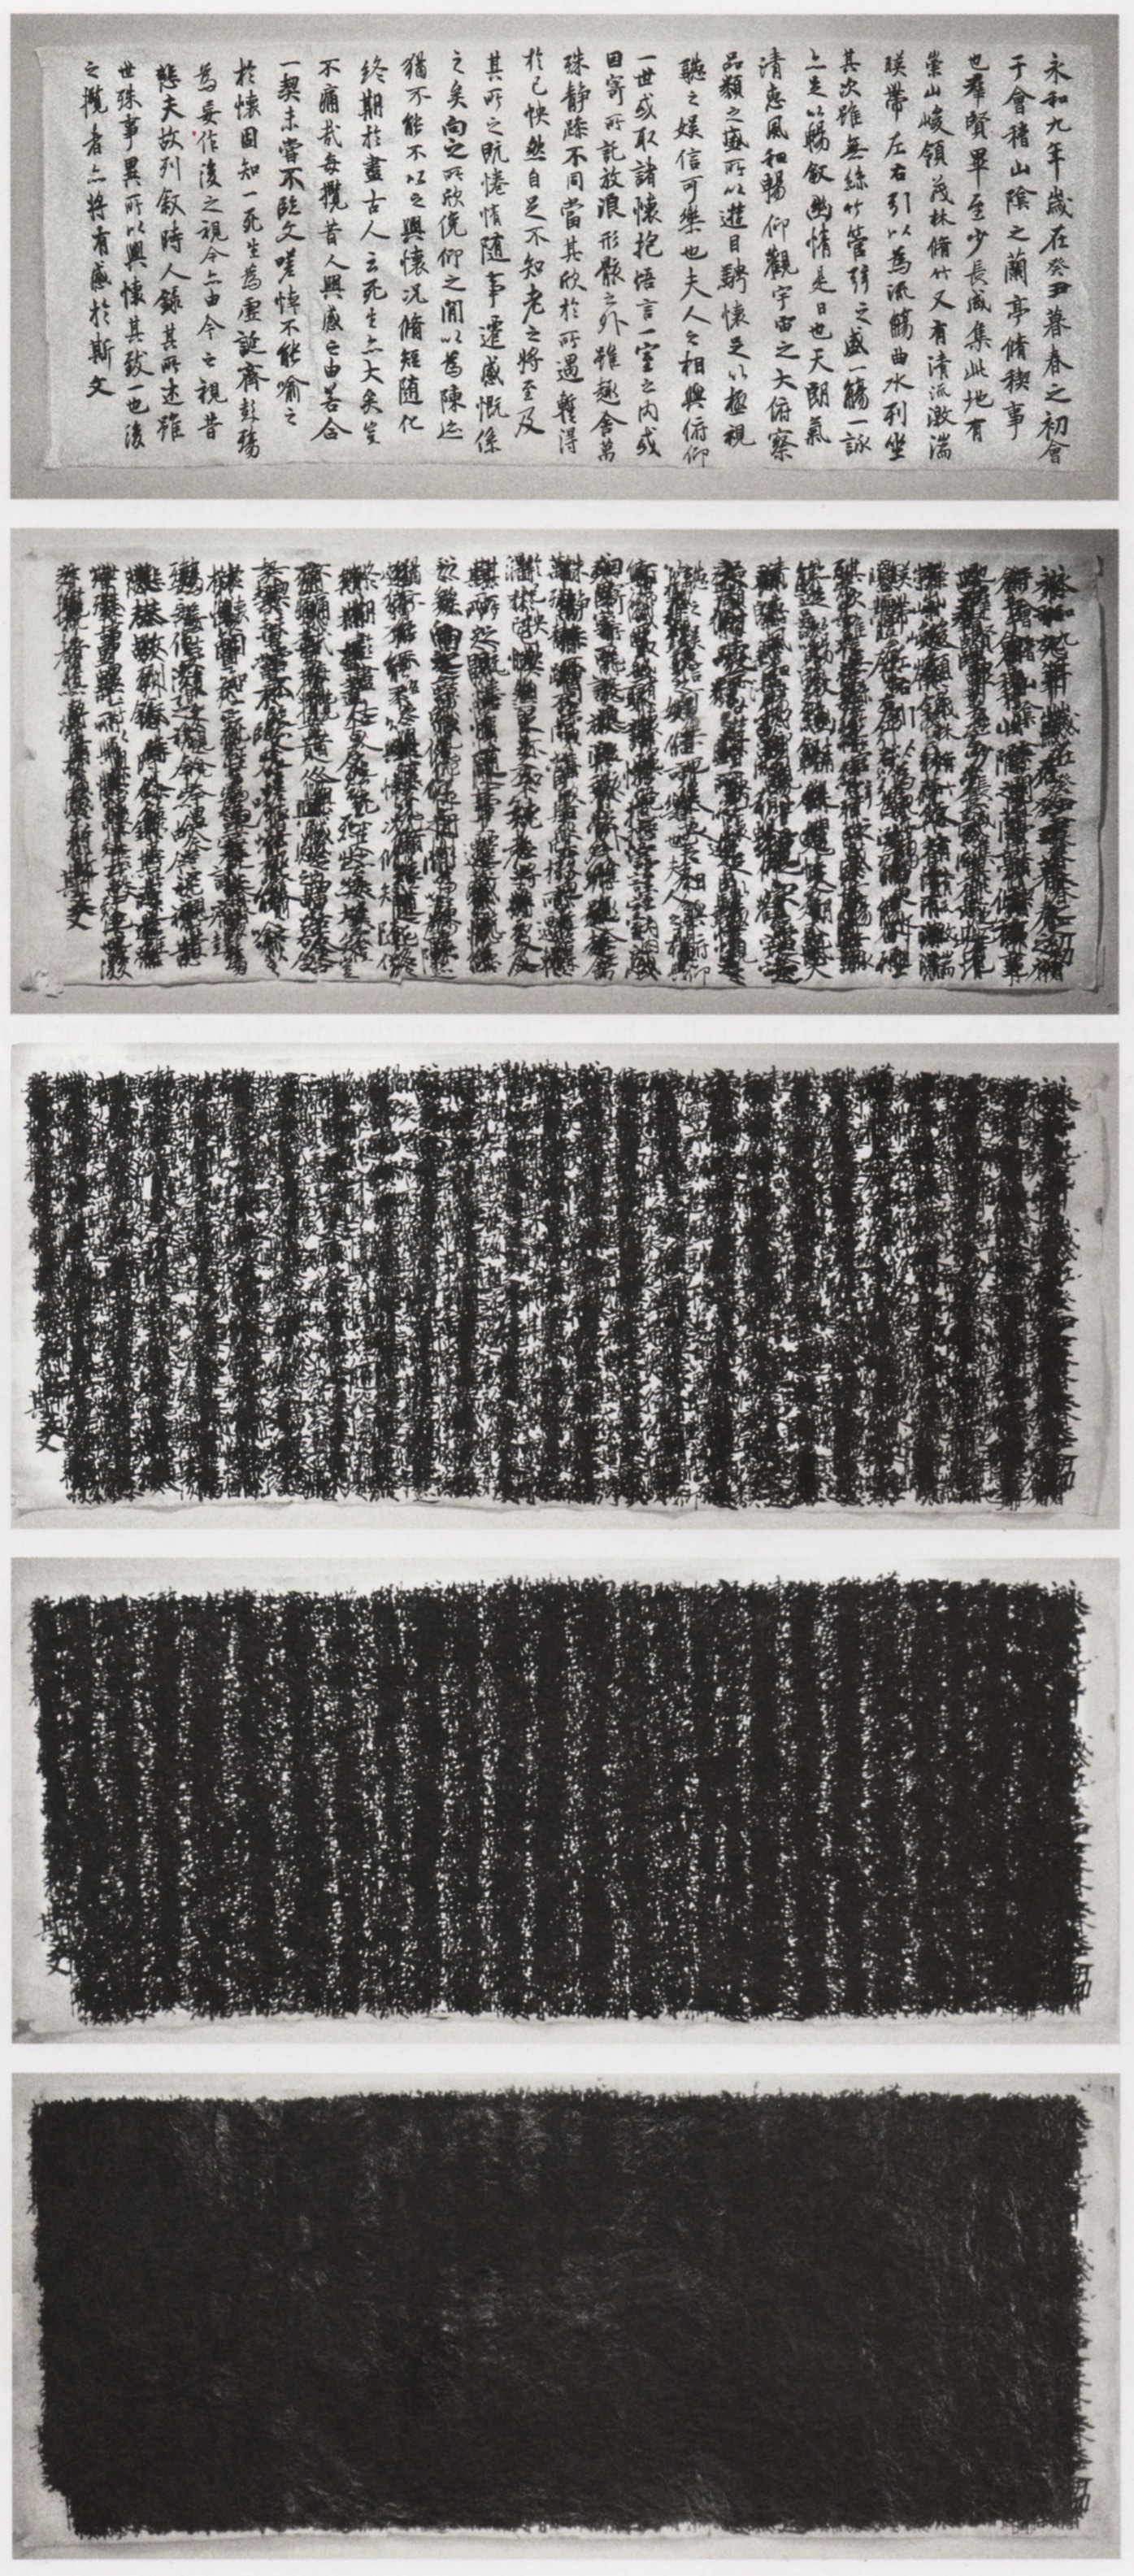 """Qiu Zhijie, Assignment No.1: Copying the """"Orchid Pavilion Preface"""" 1,000 Times, 1990/5, courtesy the artist"""